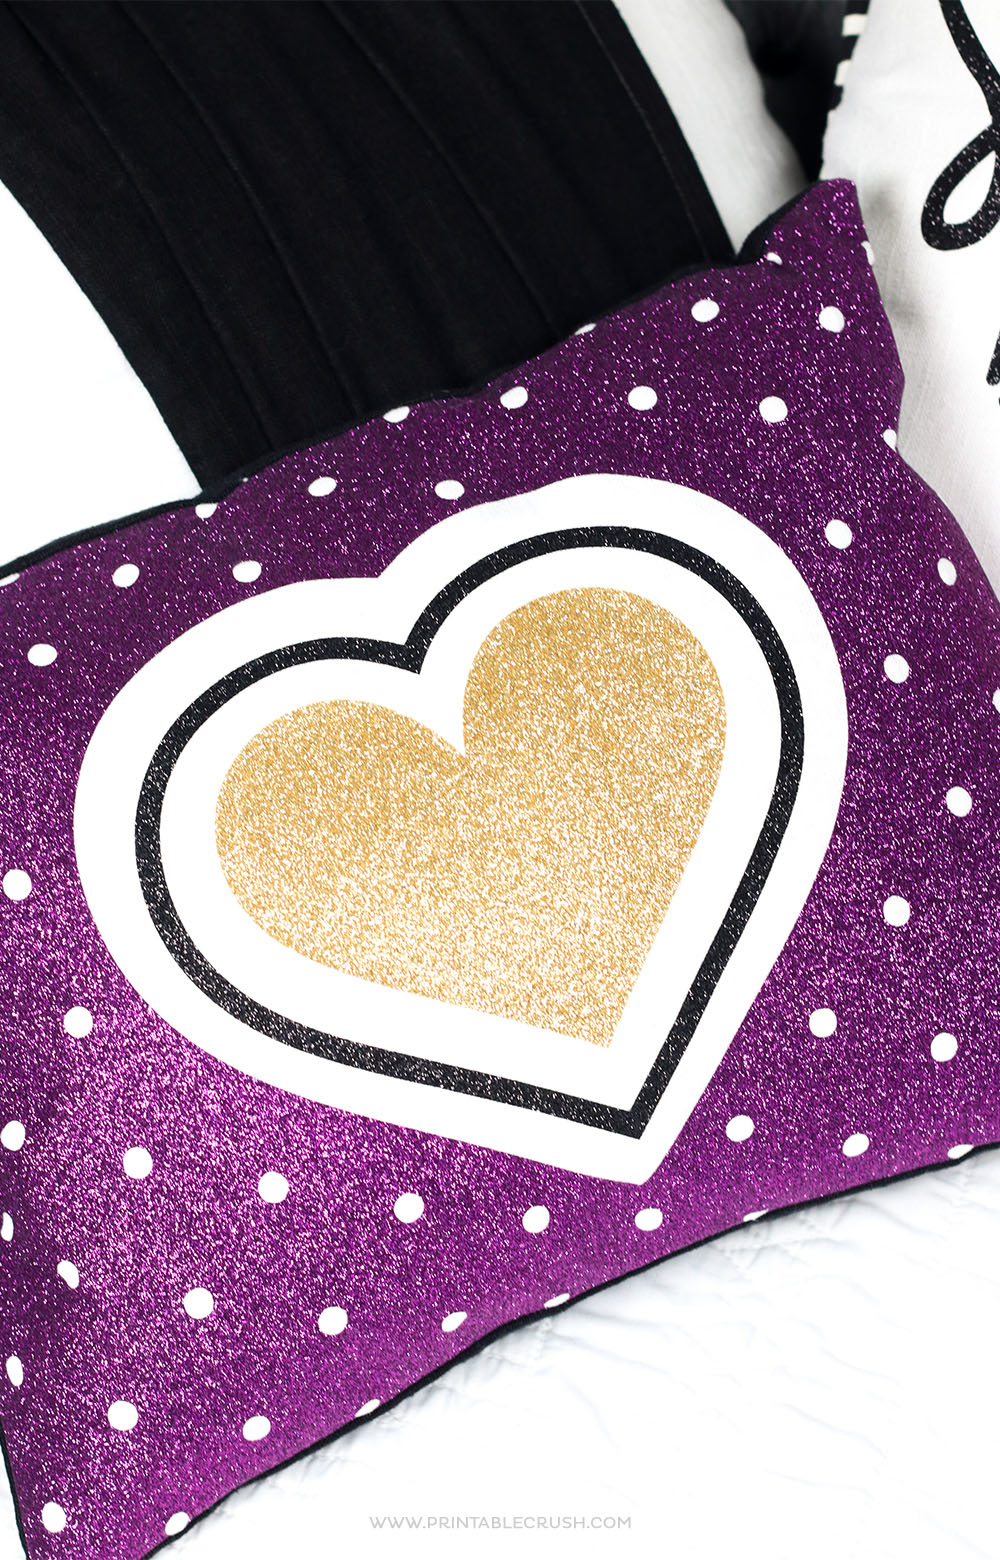 Use the Cricut EasyPress 2 to make these fun Glitter Iron-On Pillows